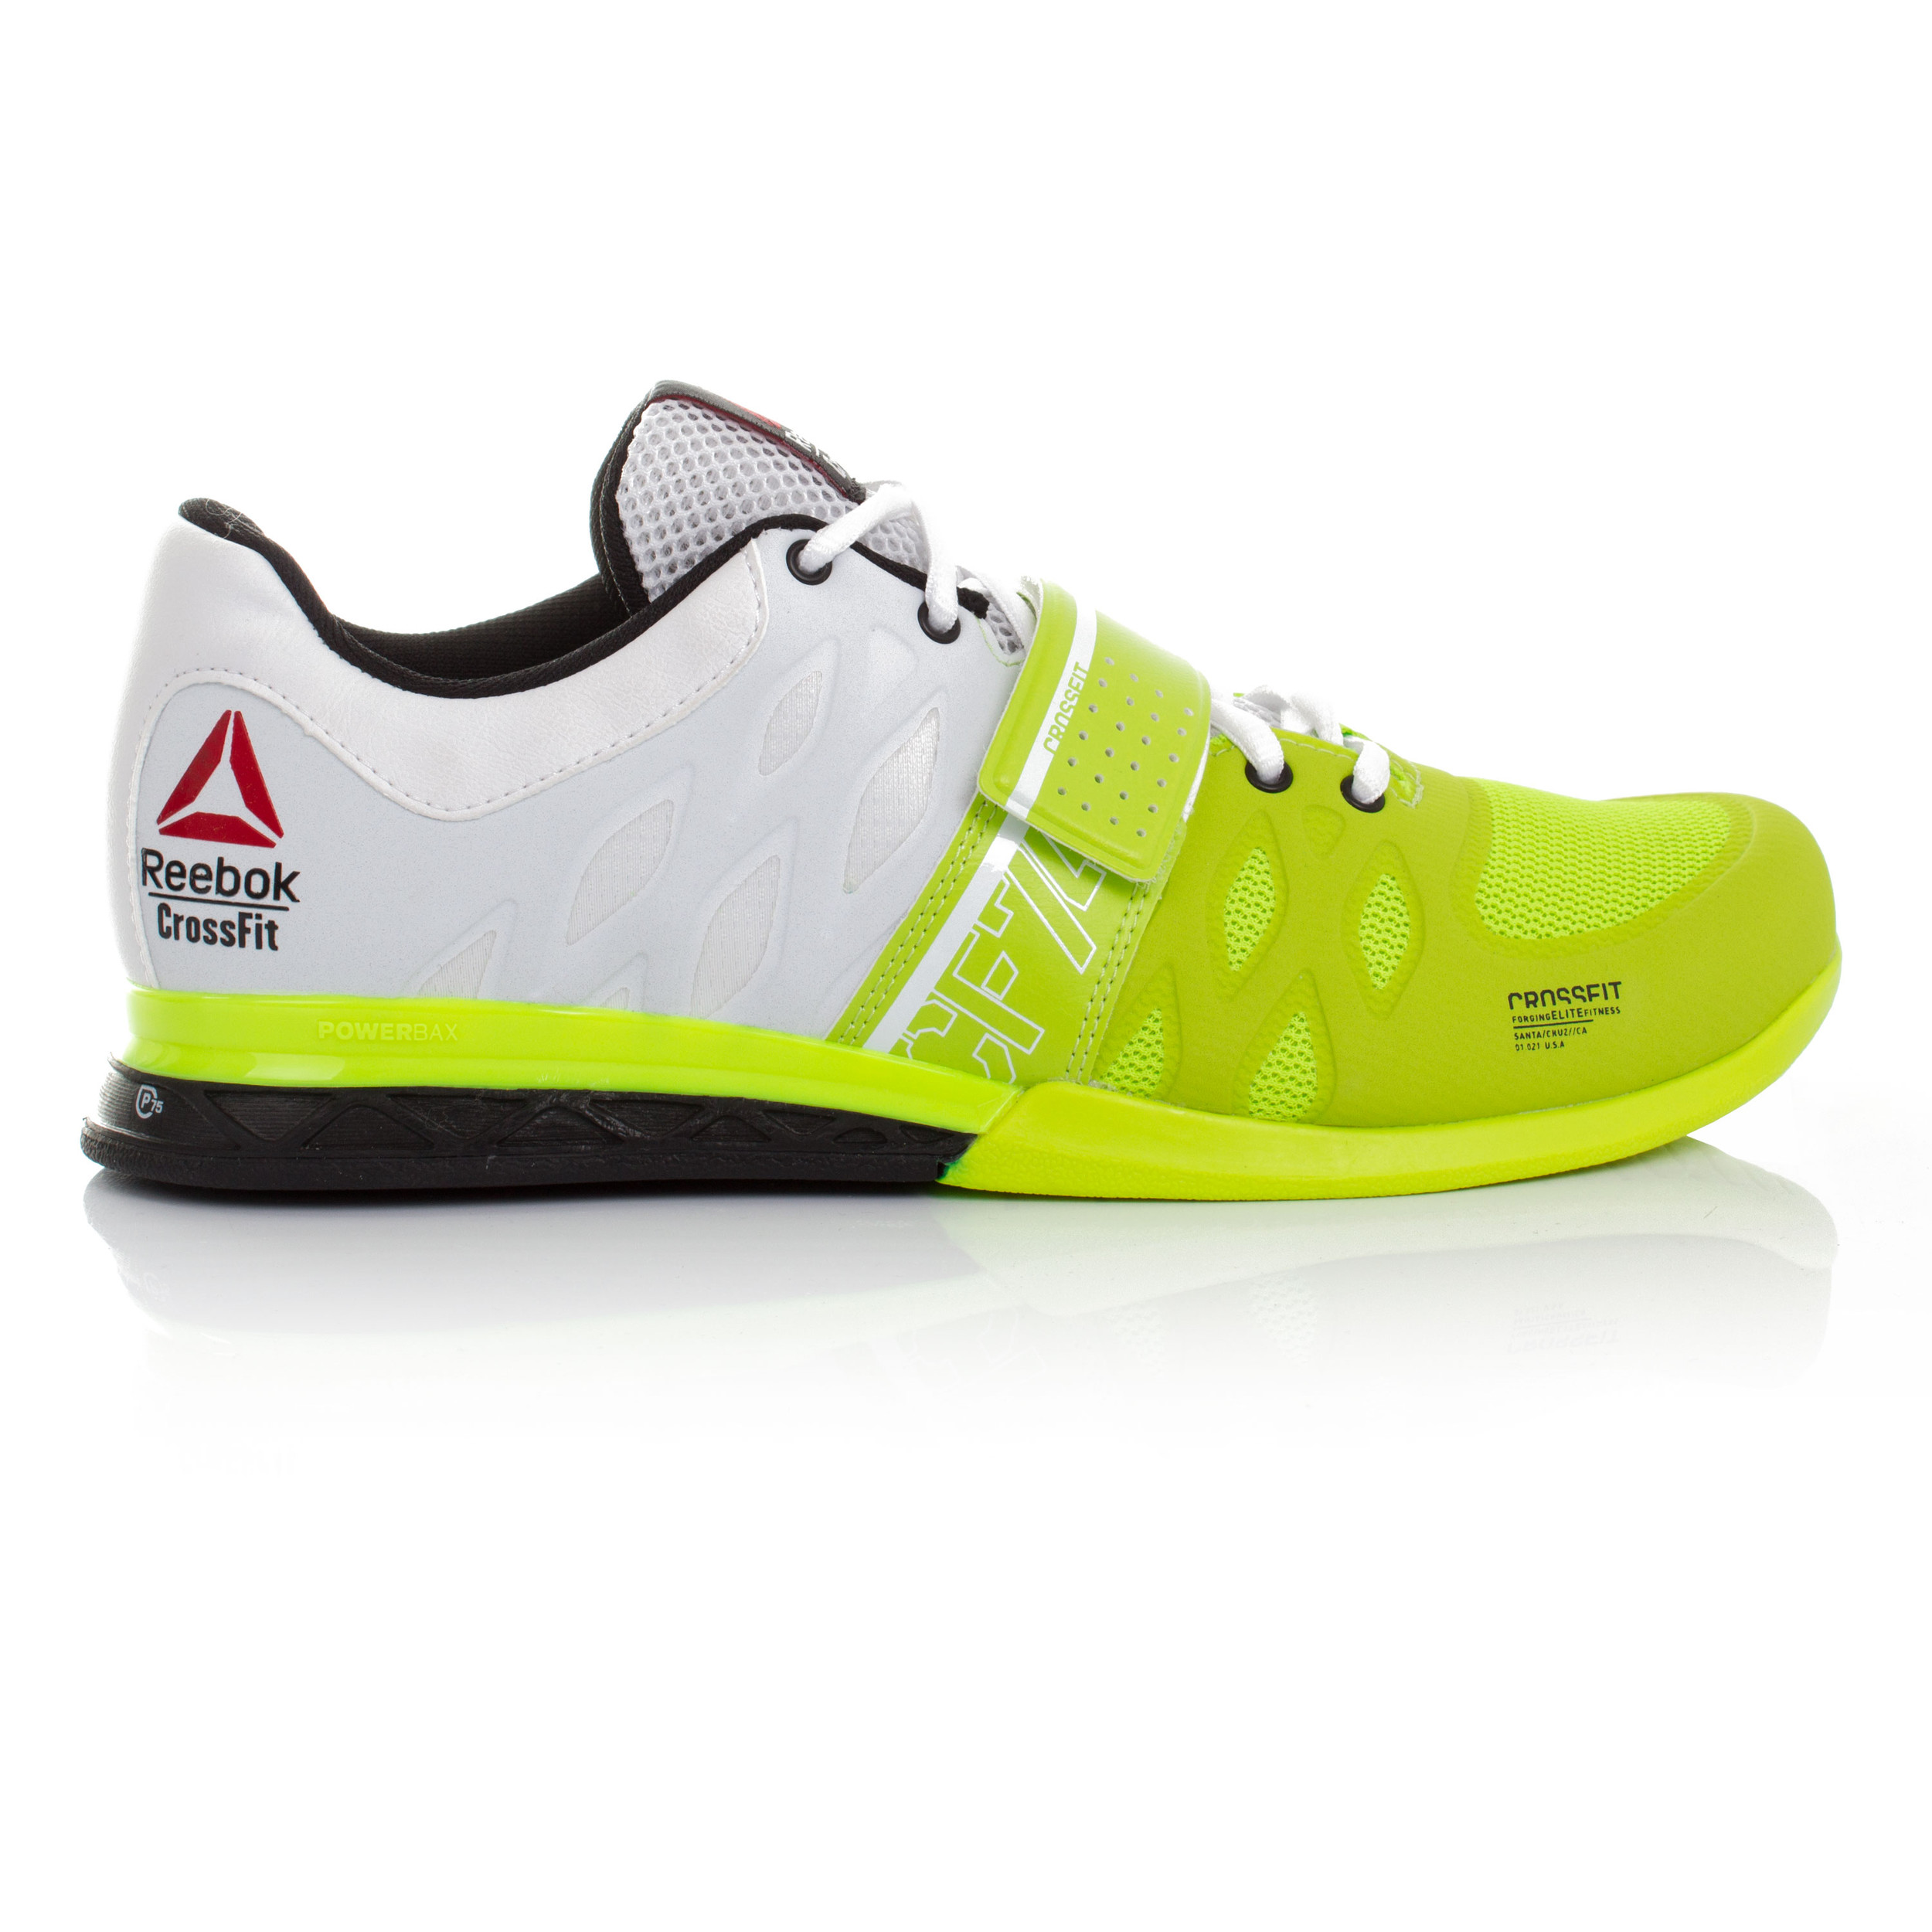 Reebok Crossfit Shoes Womens Uk